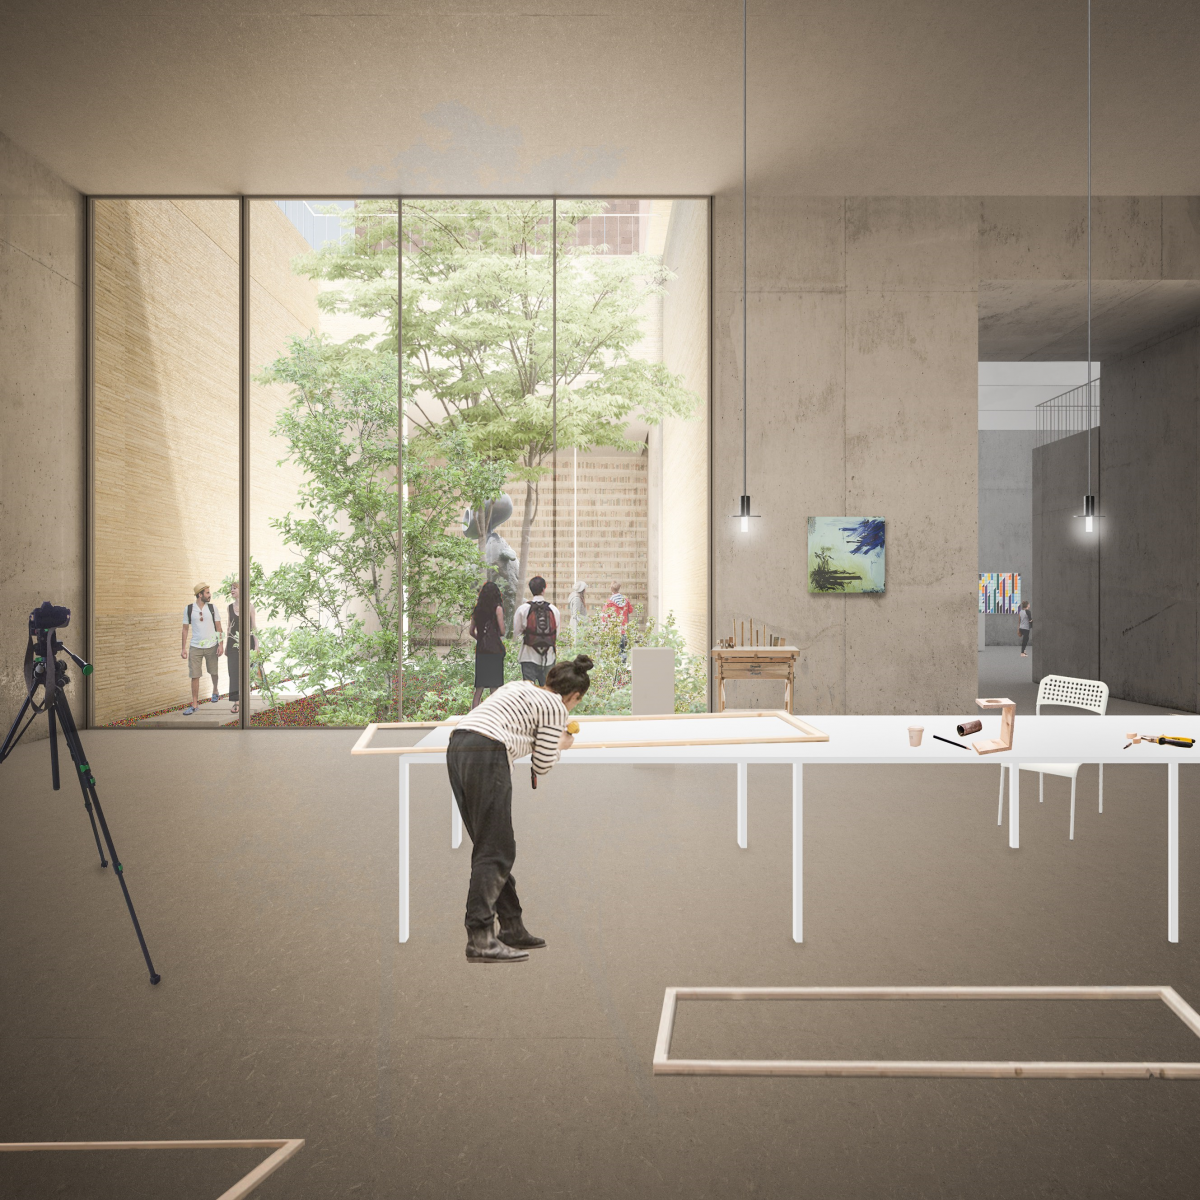 NPAK proposal - the view from the workshop space into a courtyard (Courtesy of Garine Boghossian, Garen Boghossian, Elisa Bosi, Gabriele Paravati)